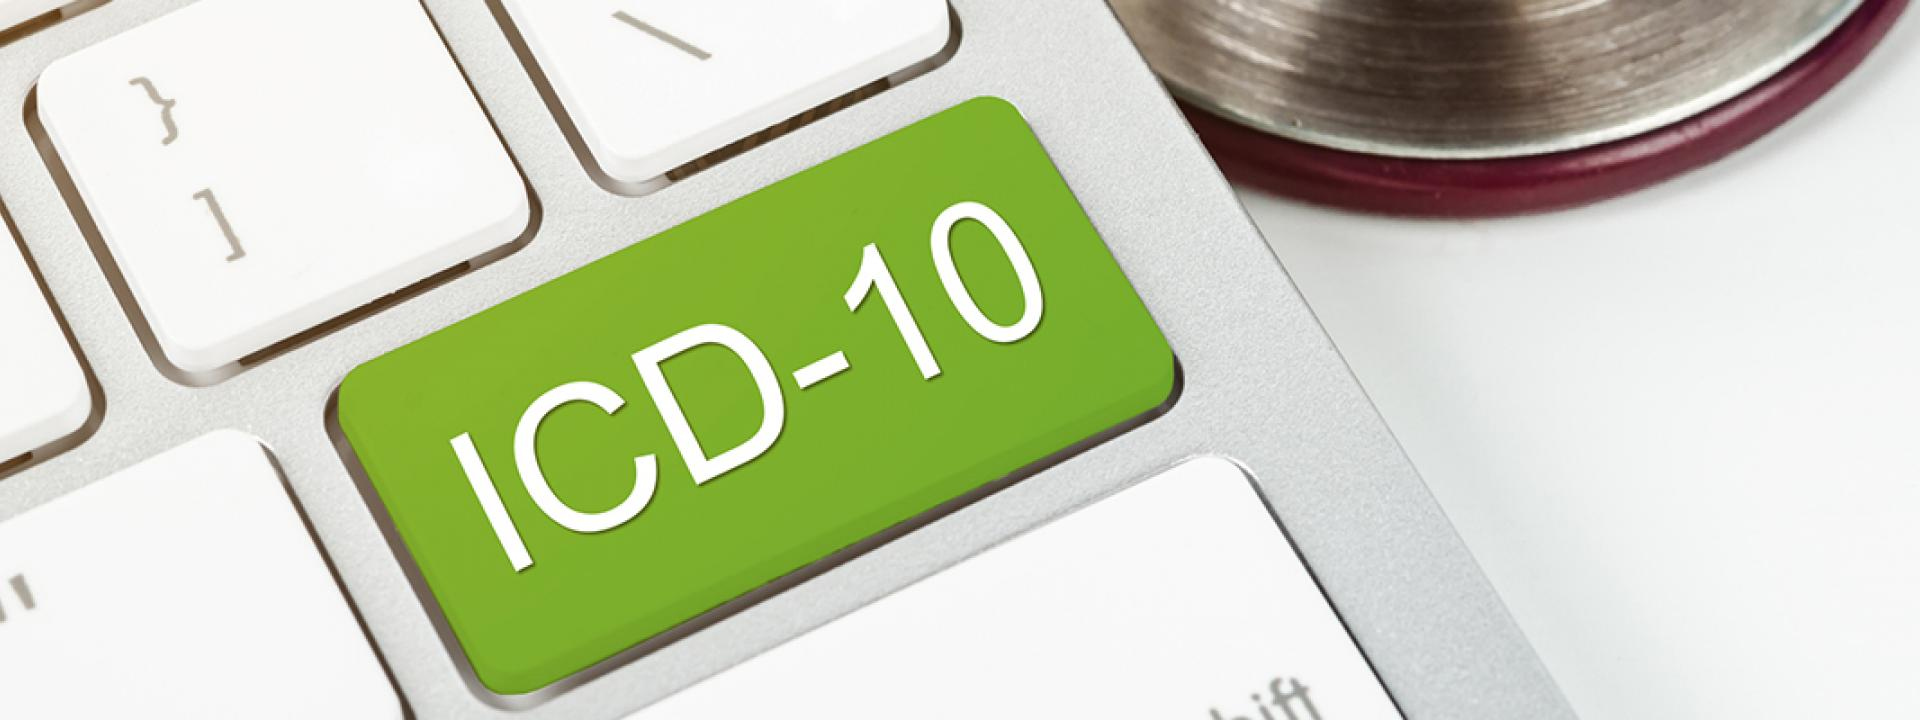 ICD button on keyboard